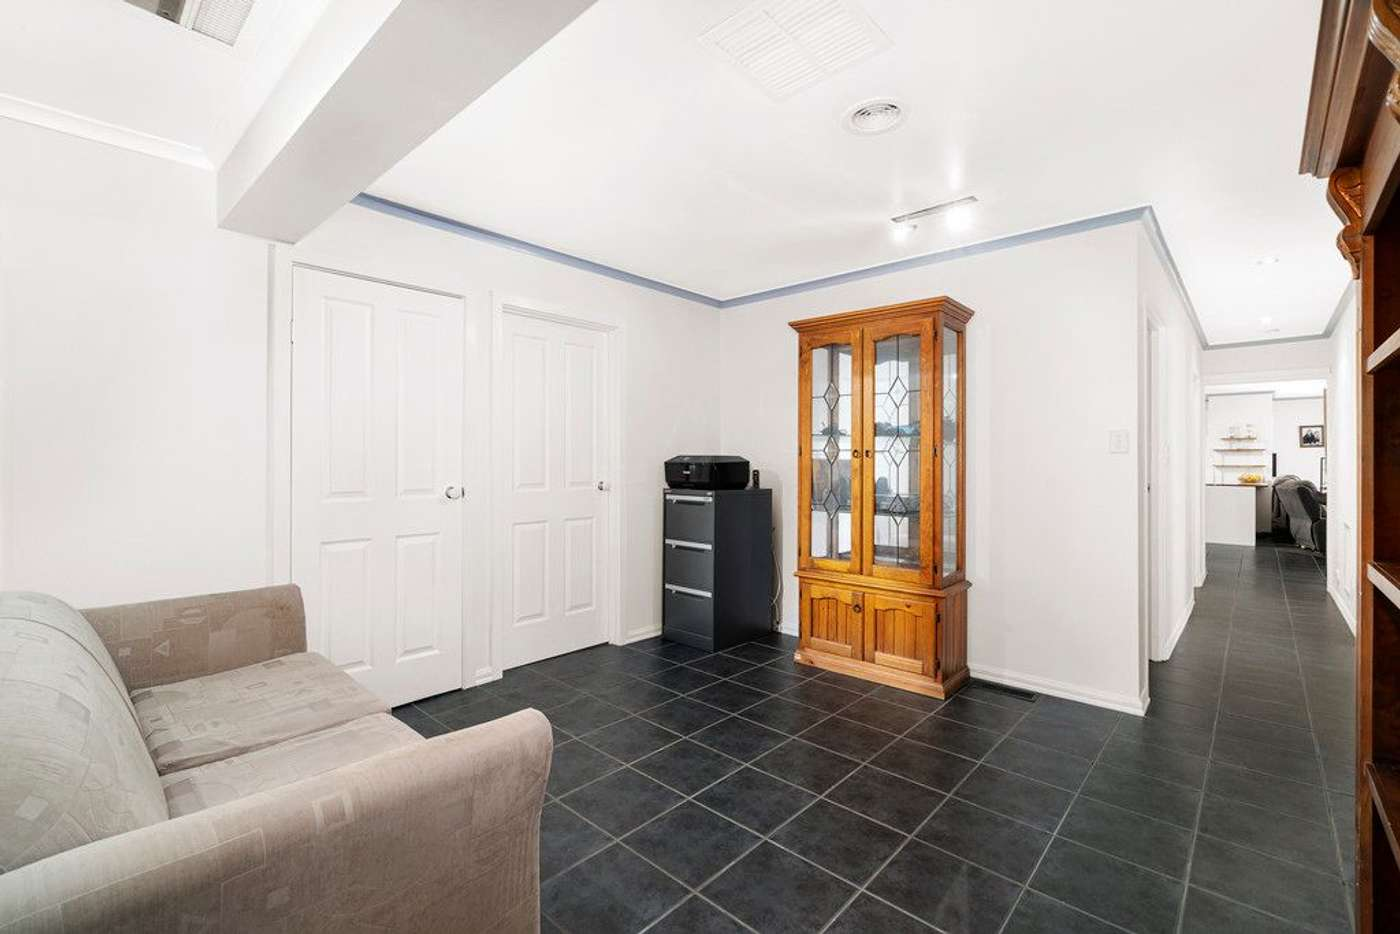 Fifth view of Homely house listing, 43 Sasses Avenue, Bayswater VIC 3153